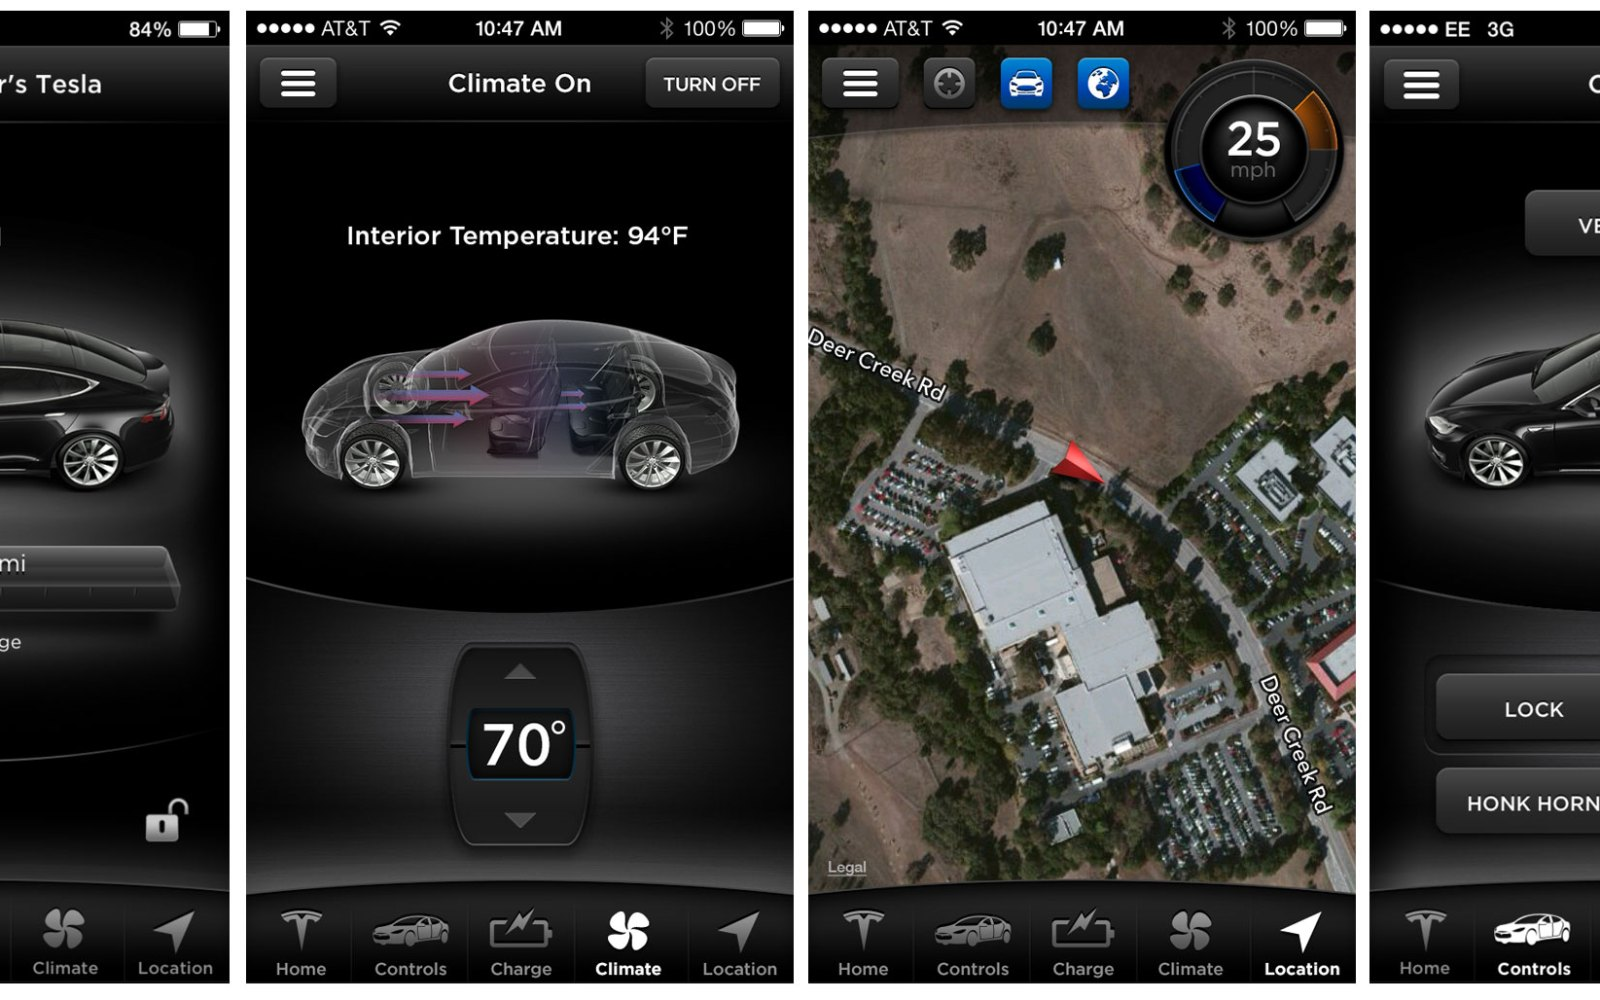 Stolen Car App >> Tesla Owner Tracked His Stolen Car With App And Led Police To The